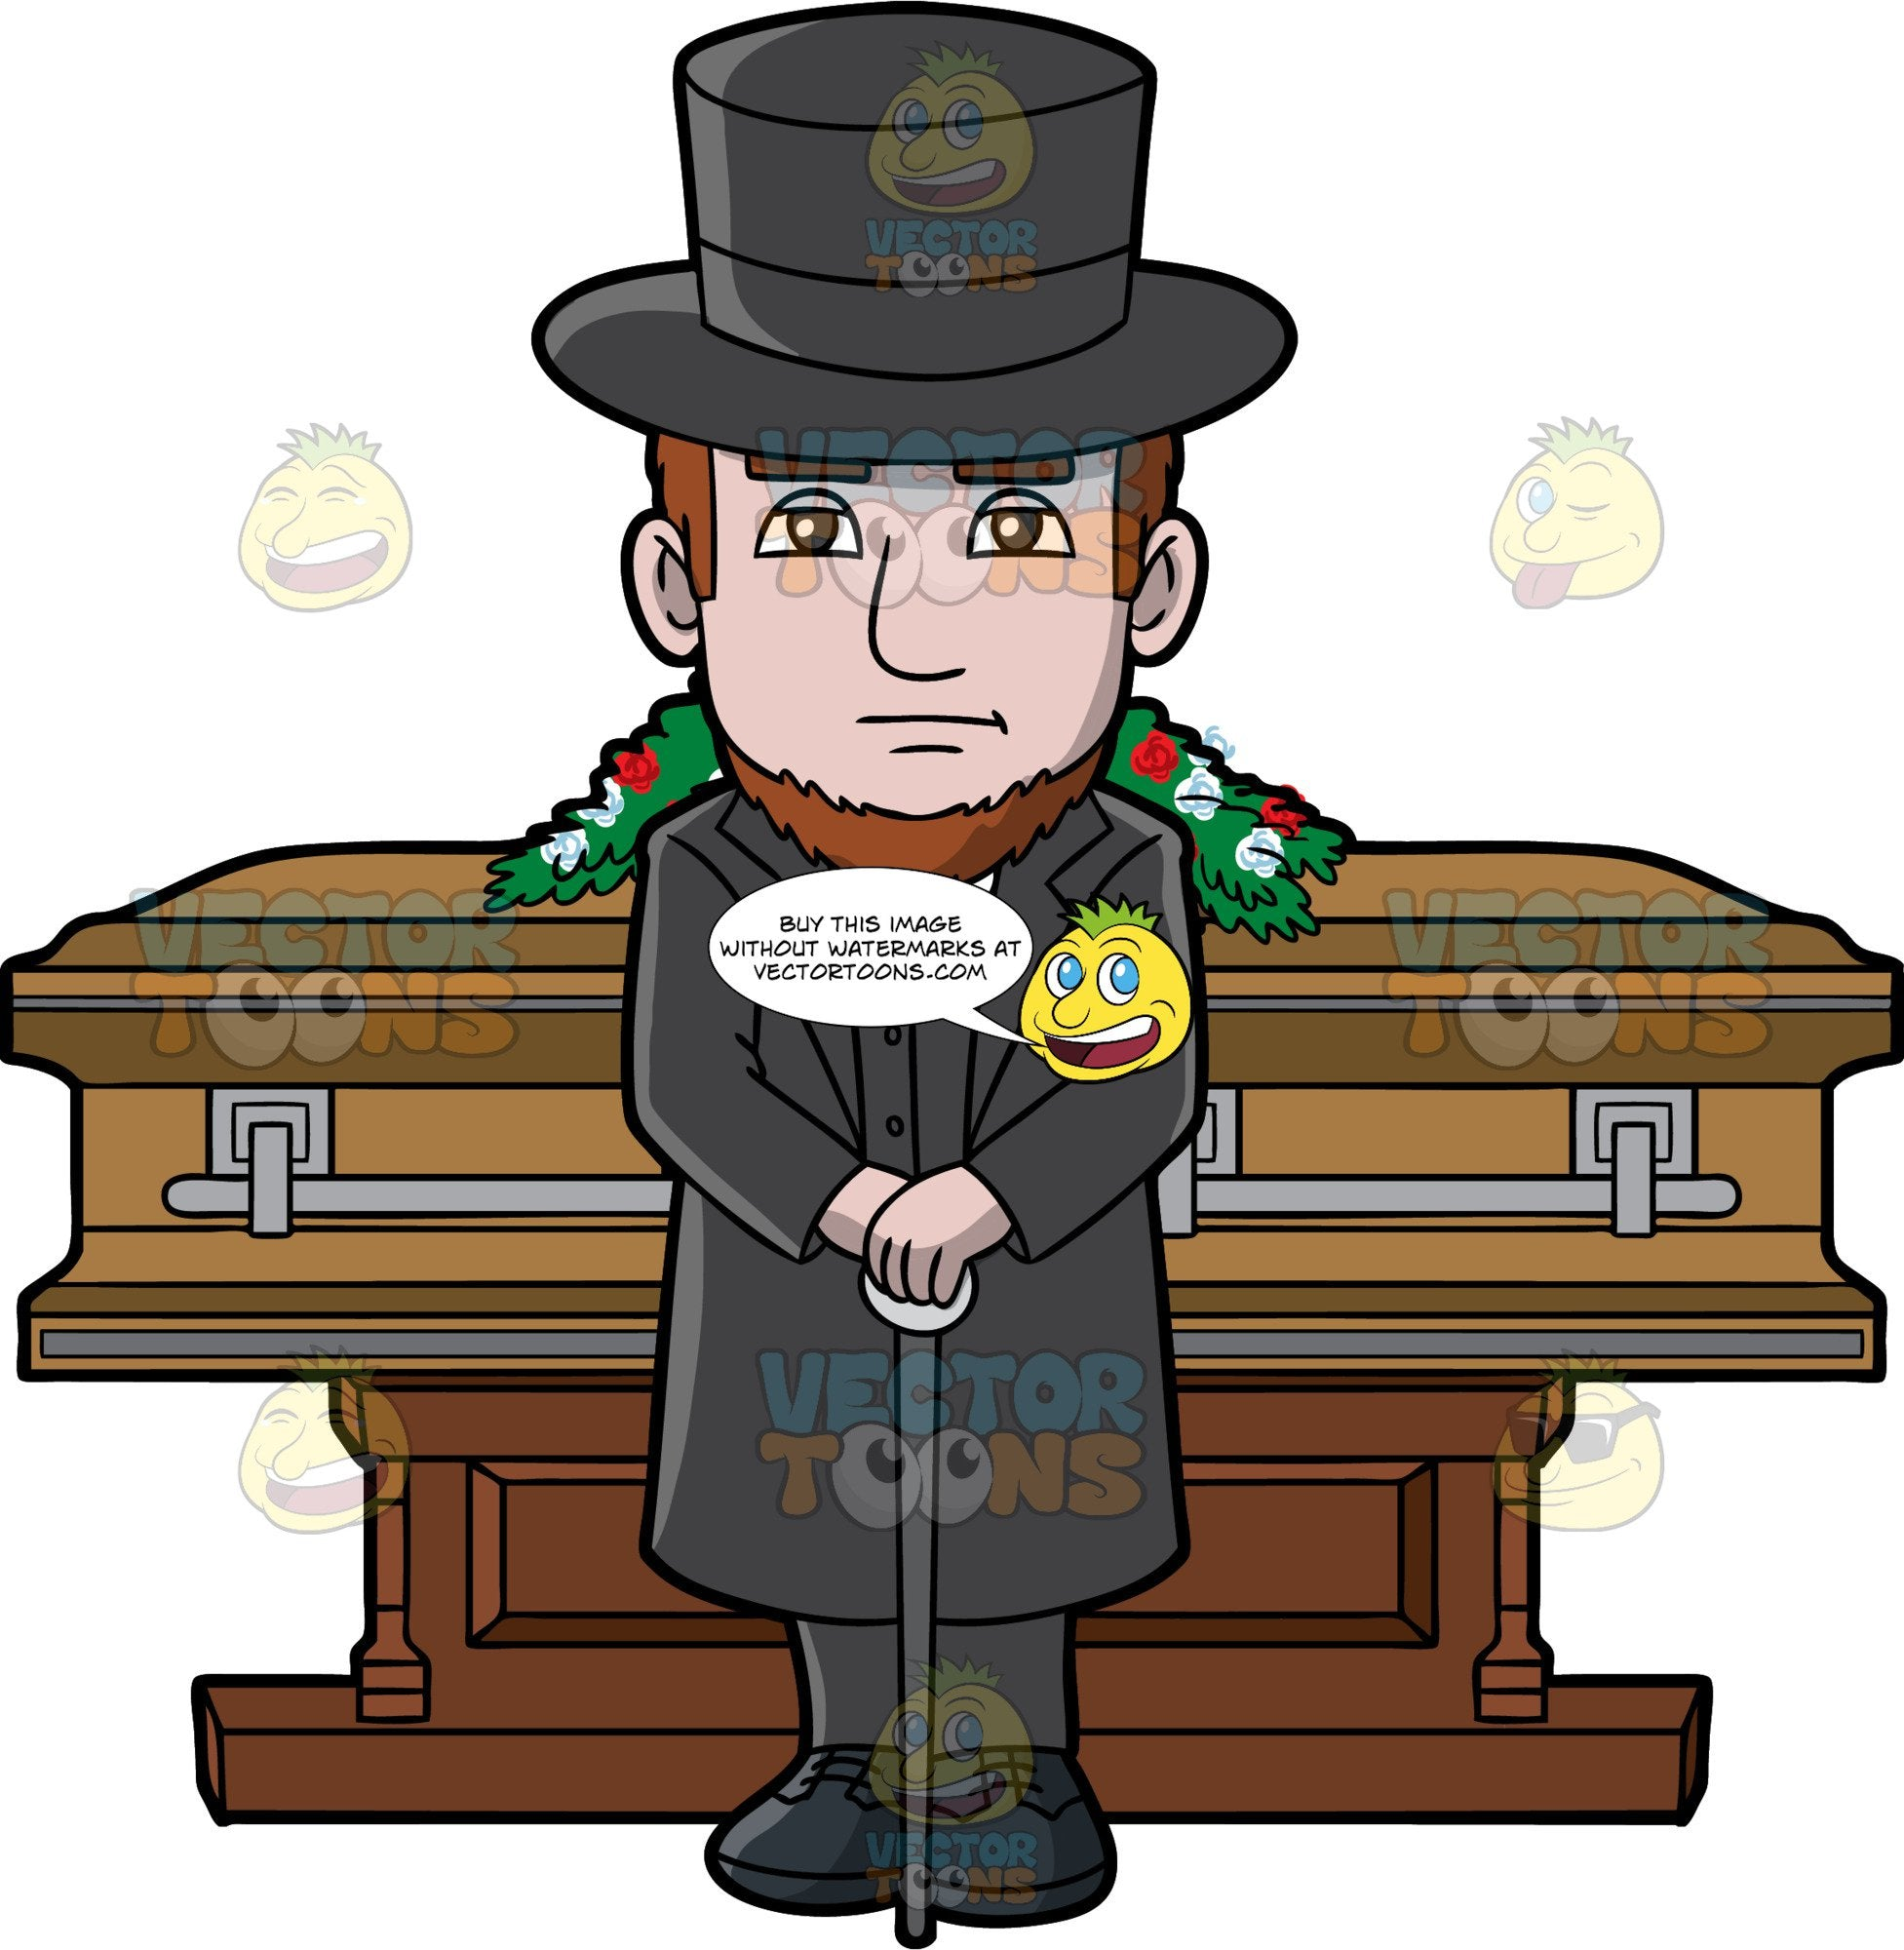 A Sad Male Funeral Director. A man with brown hair and beard, wearing a black top hat, trench coat, vest, pants, shoes, gray necktie, white dress shirt, frowns while resting his hands on top of a gray cane, as he stands in front of an oak brown coffin with gray trimmings with a casket spray of red and white flowers on top, and reddish brown stand